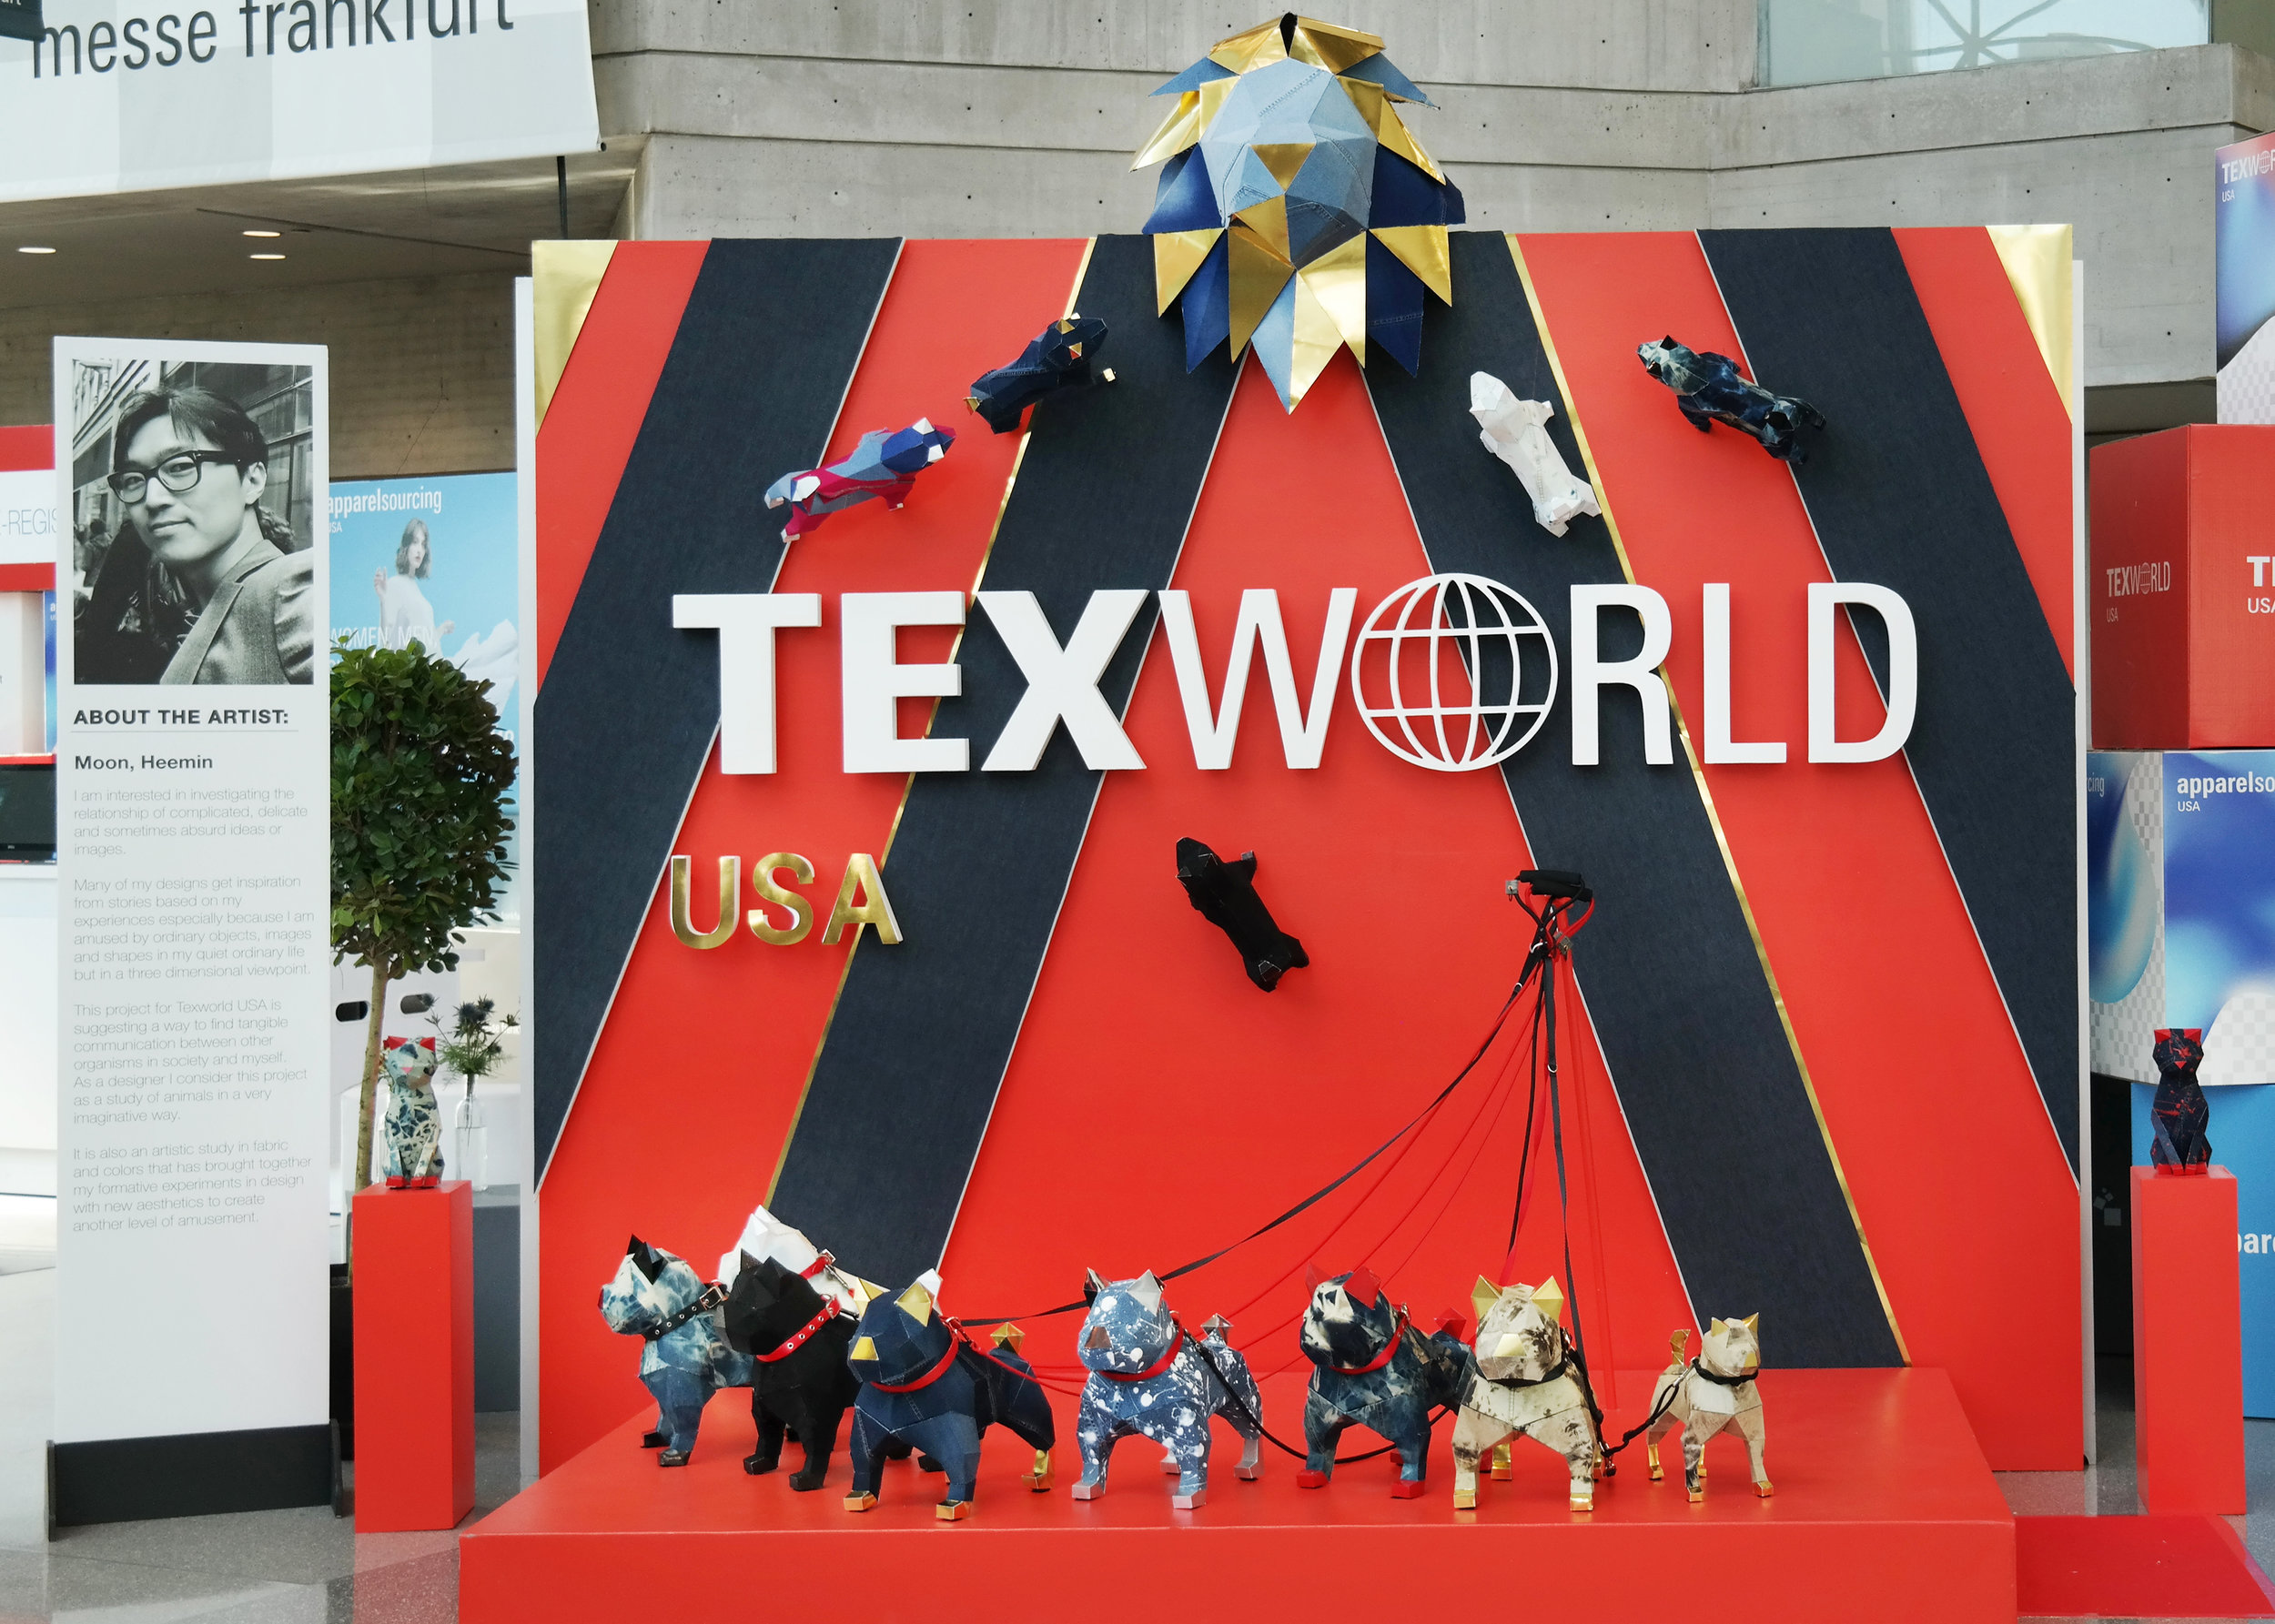 Entrance Exhibition withTex World in USA